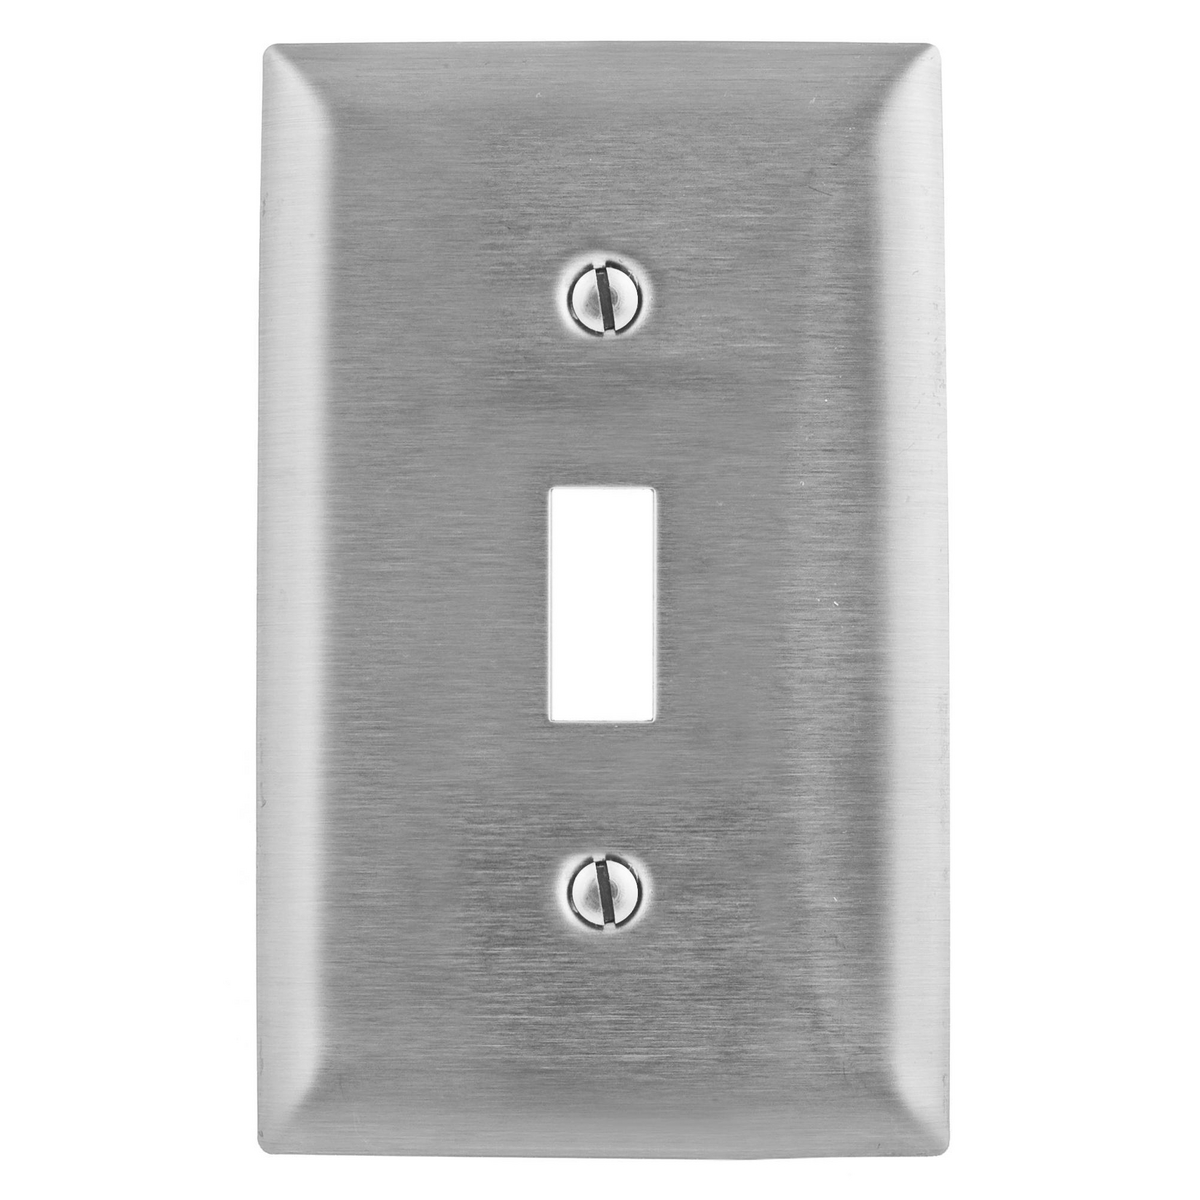 Hubbell SS1C WALLPLATE, 1-G, 347V SW, SS